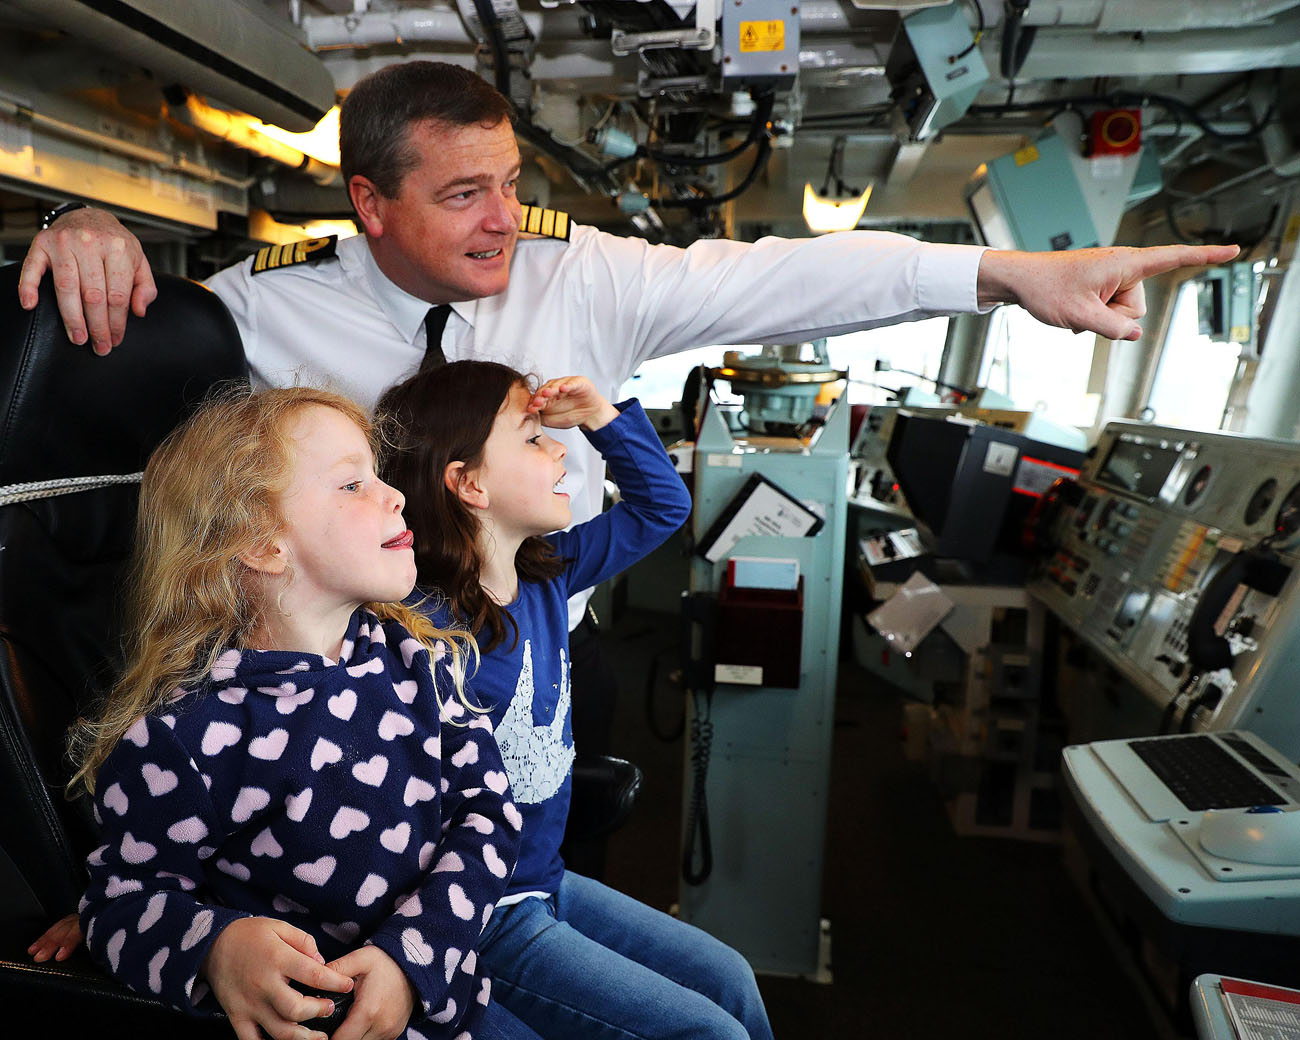 HMS Portland sails on a nine-month patrol